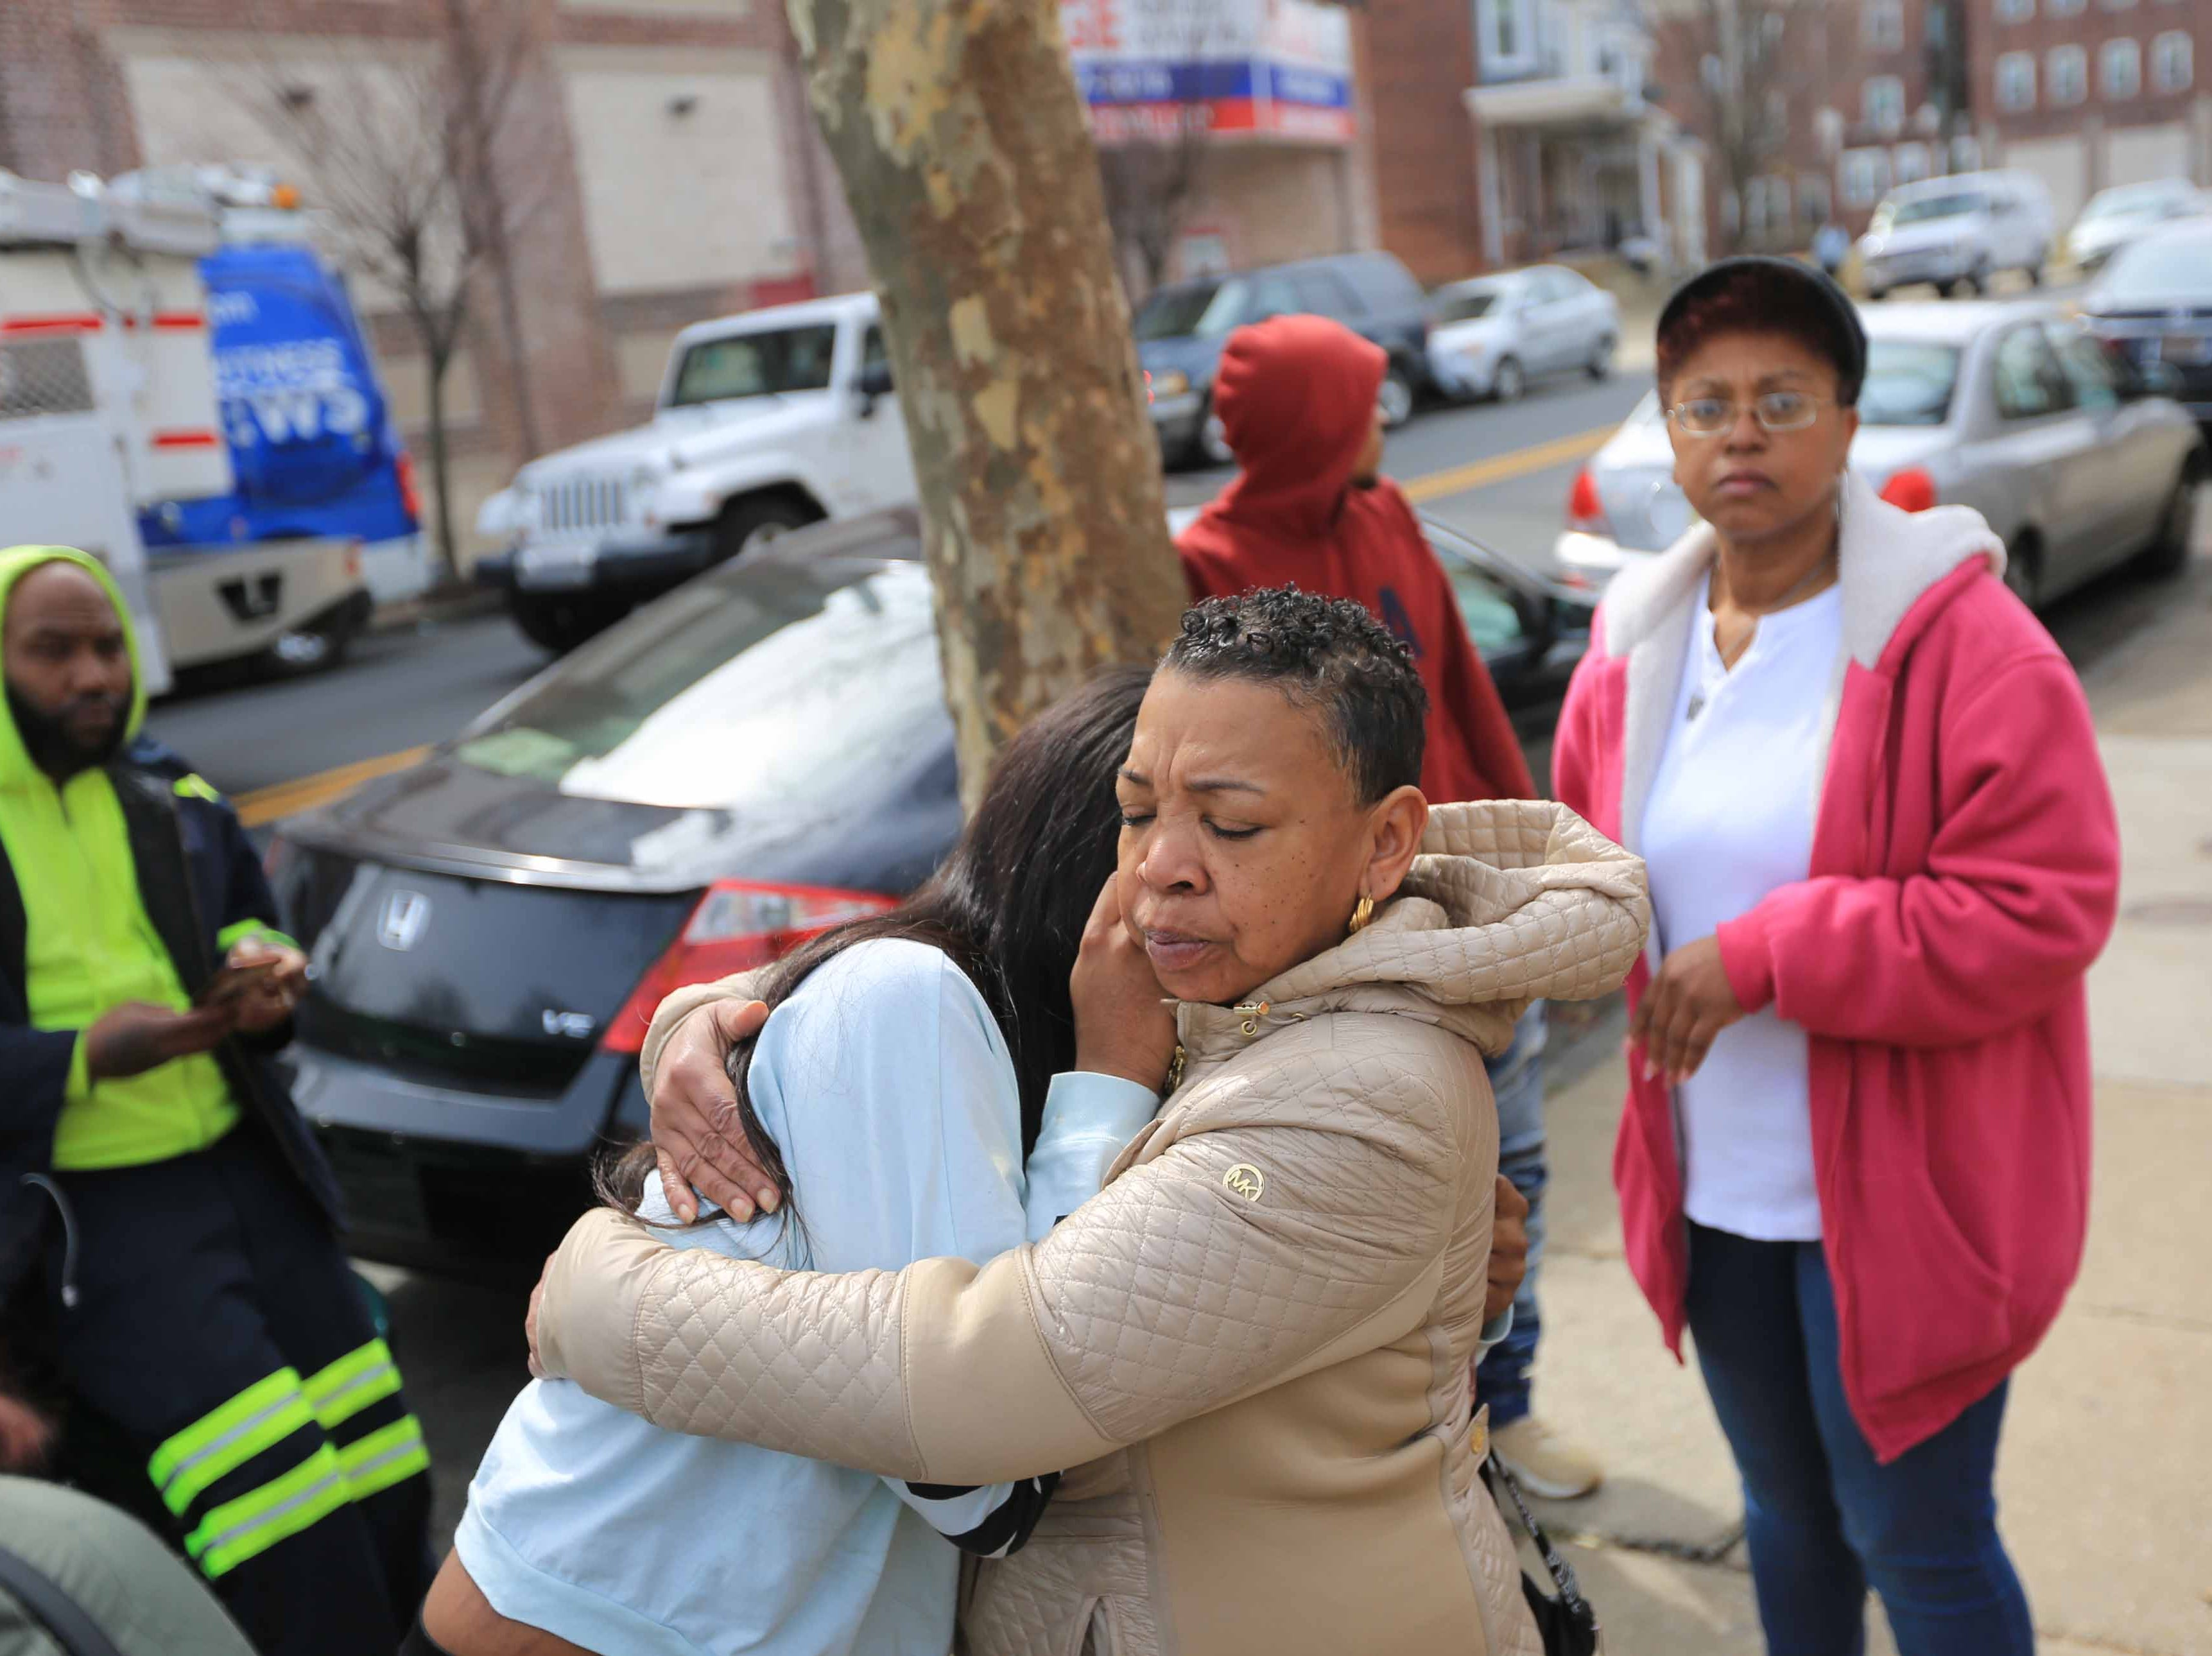 Members of the community embrace while police continue to investigate the crime scene on W. 26th and N. Market St. where two 17-year-olds were fatally shot Monday morning.